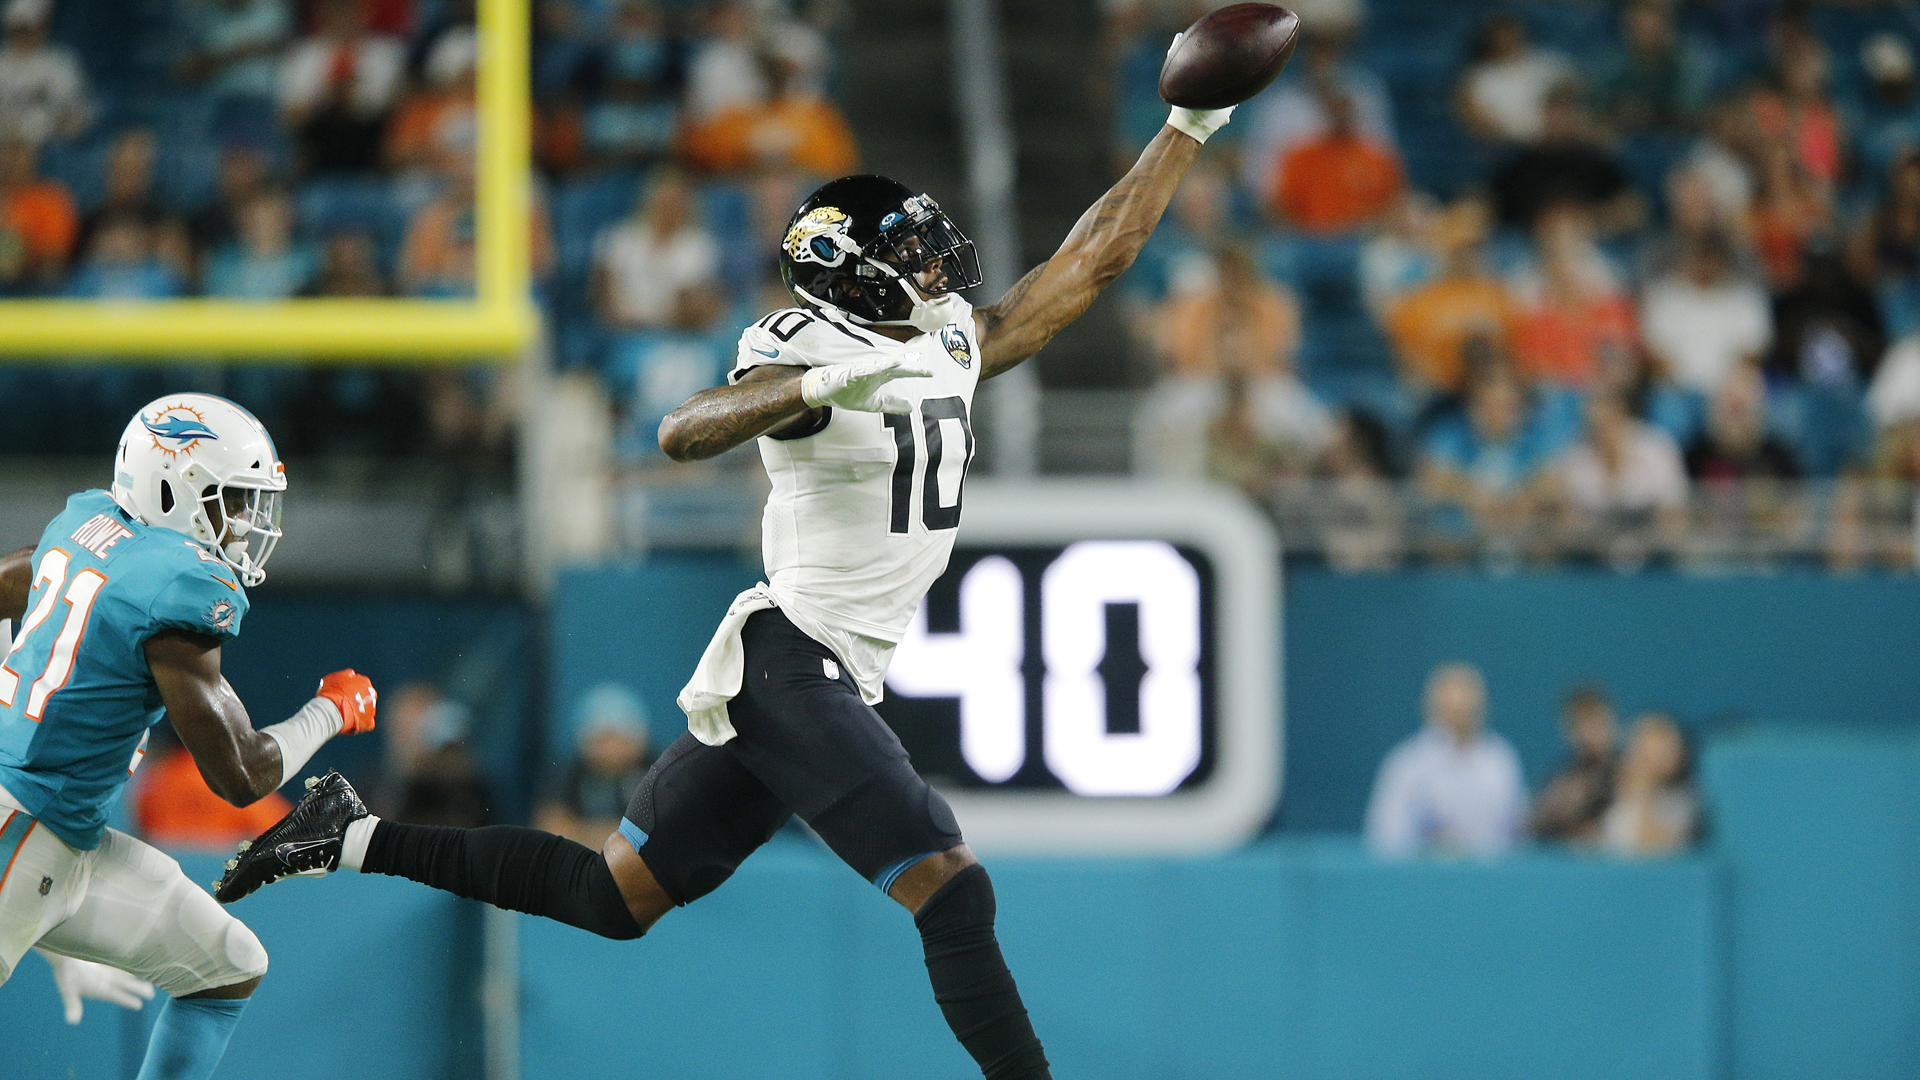 Terrelle Pryor #10 of the Jacksonville Jaguars makes a catch against the Miami Dolphins during the second quarter of the preseason game at Hard Rock Stadium on August 22, 2019 in Miami, Florida. (Credit: Michael Reaves/Getty Images)